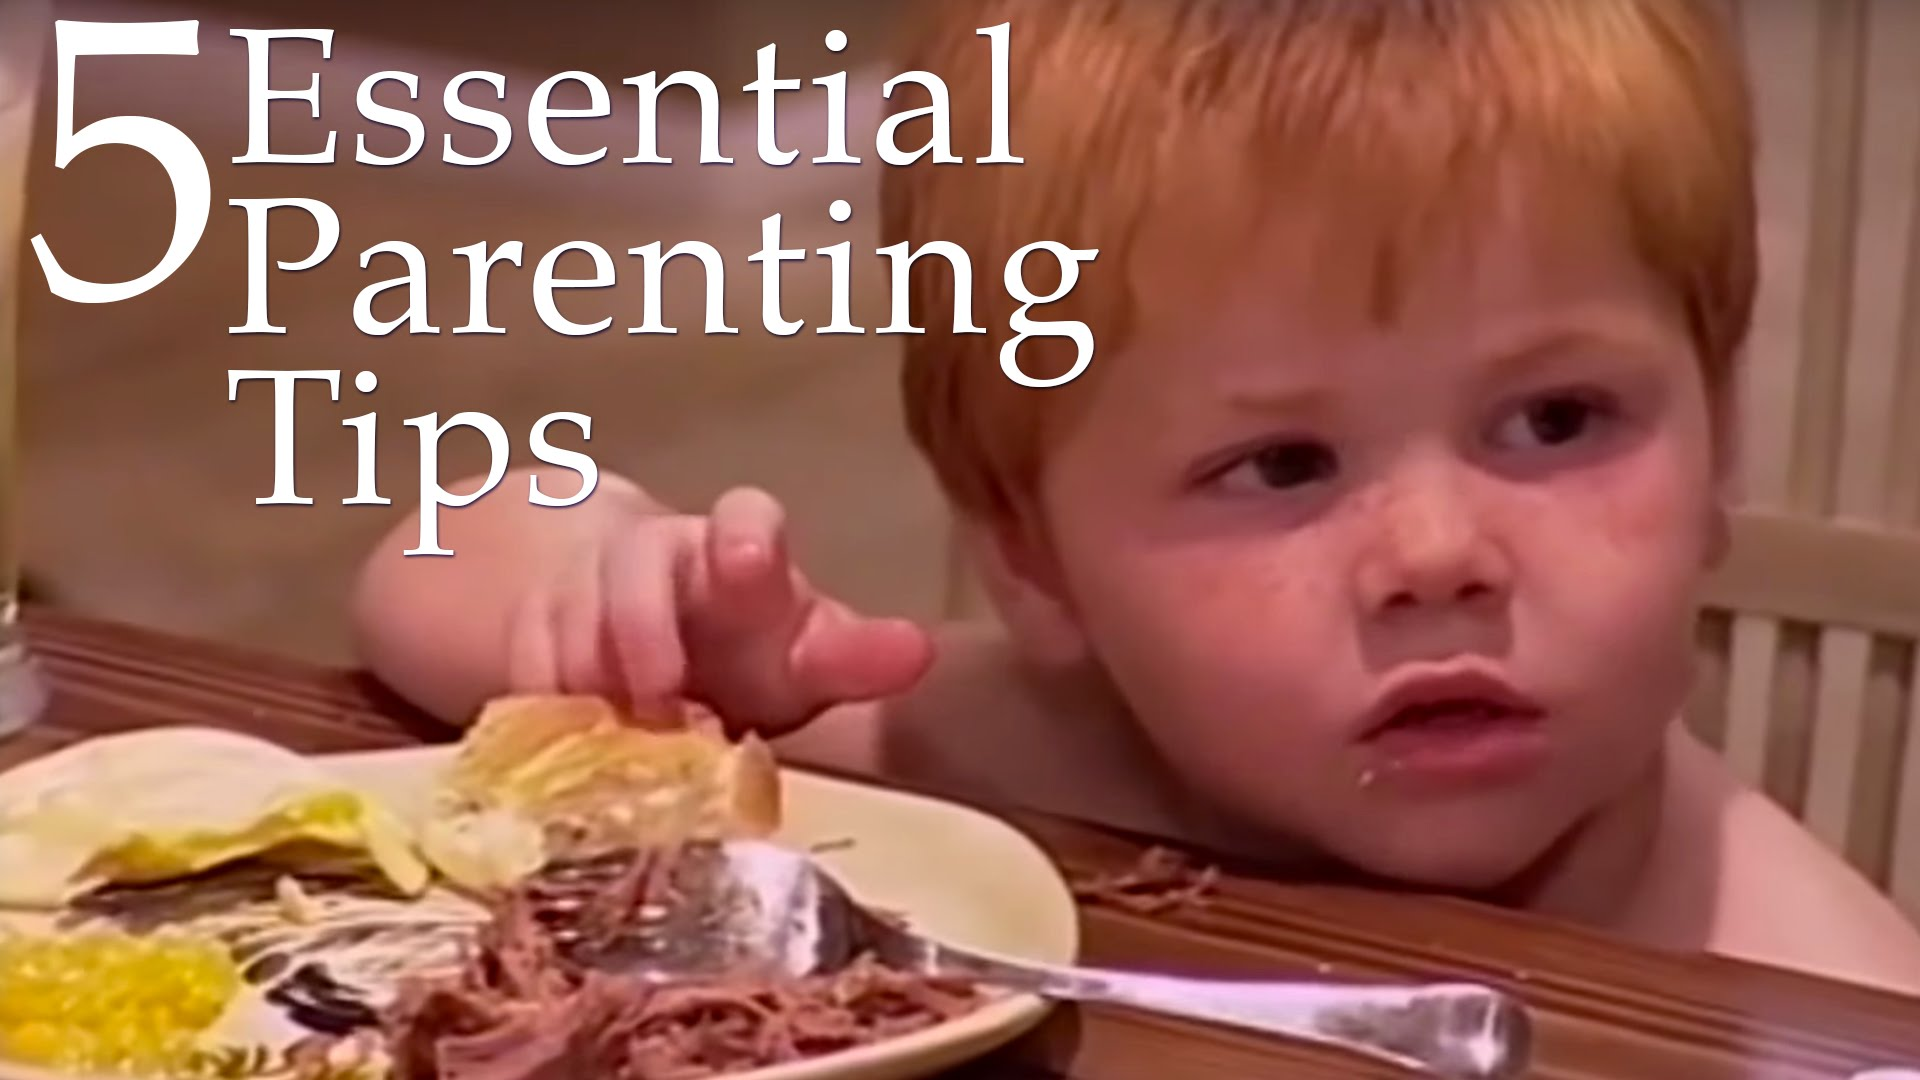 5-Essential-Parenting-Tips-2-How-To-Deal-With-Tantrums-Dinner-Time-More-Supernanny-US